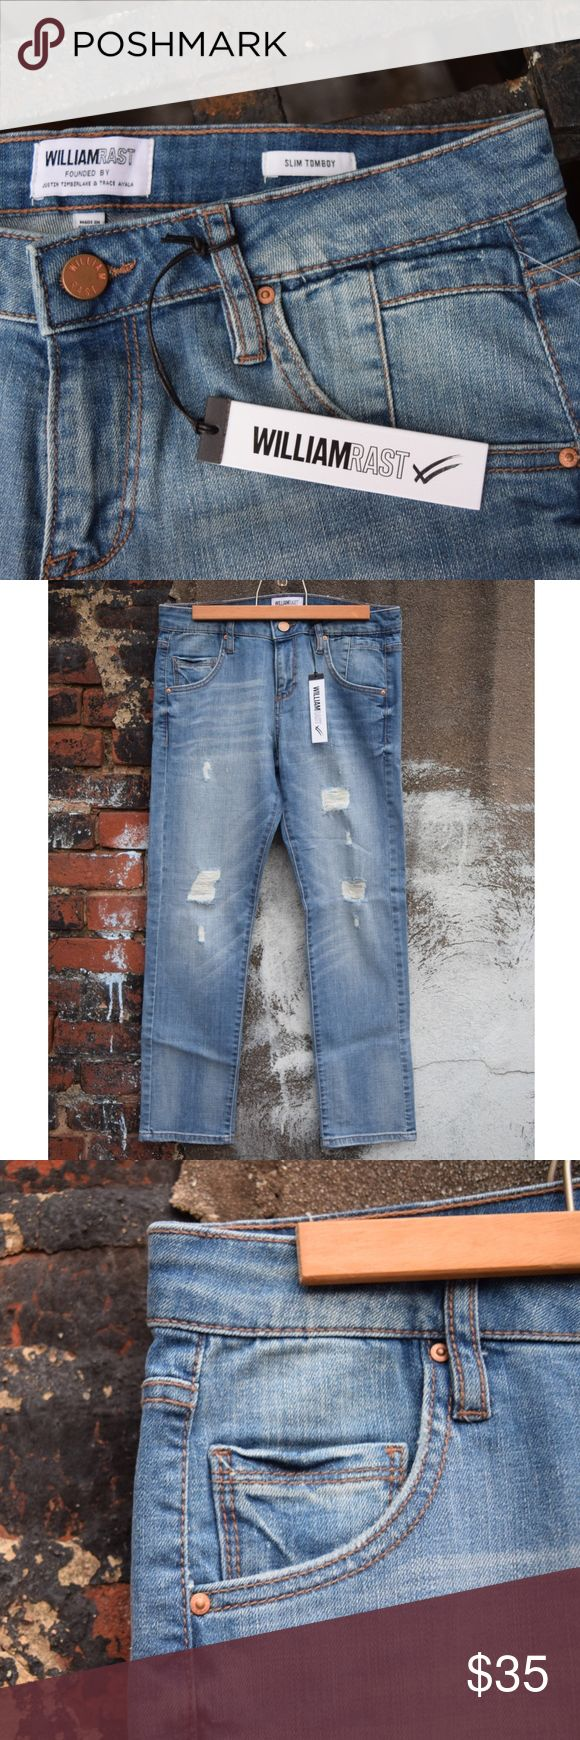 William Rast distressed skinny jeans NWT William Rast distressed slim tomboy skinny jeans. New With Tags!!! US Size 25, in woven cotton/elastane. William Rast Jeans Skinny